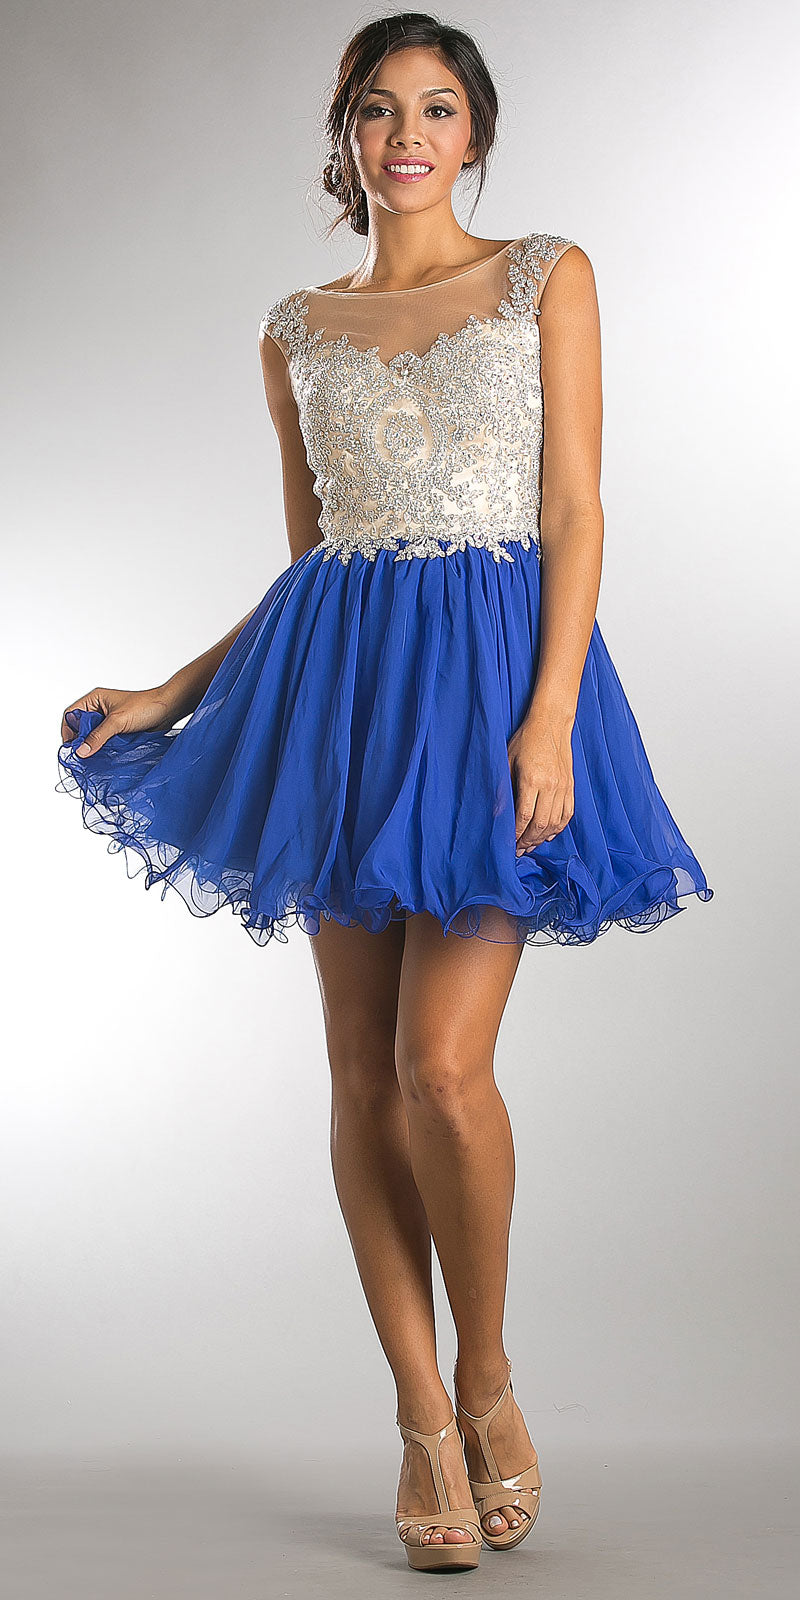 Main image of Embellished Lace Bodice Short Babydoll Homecoming Dress